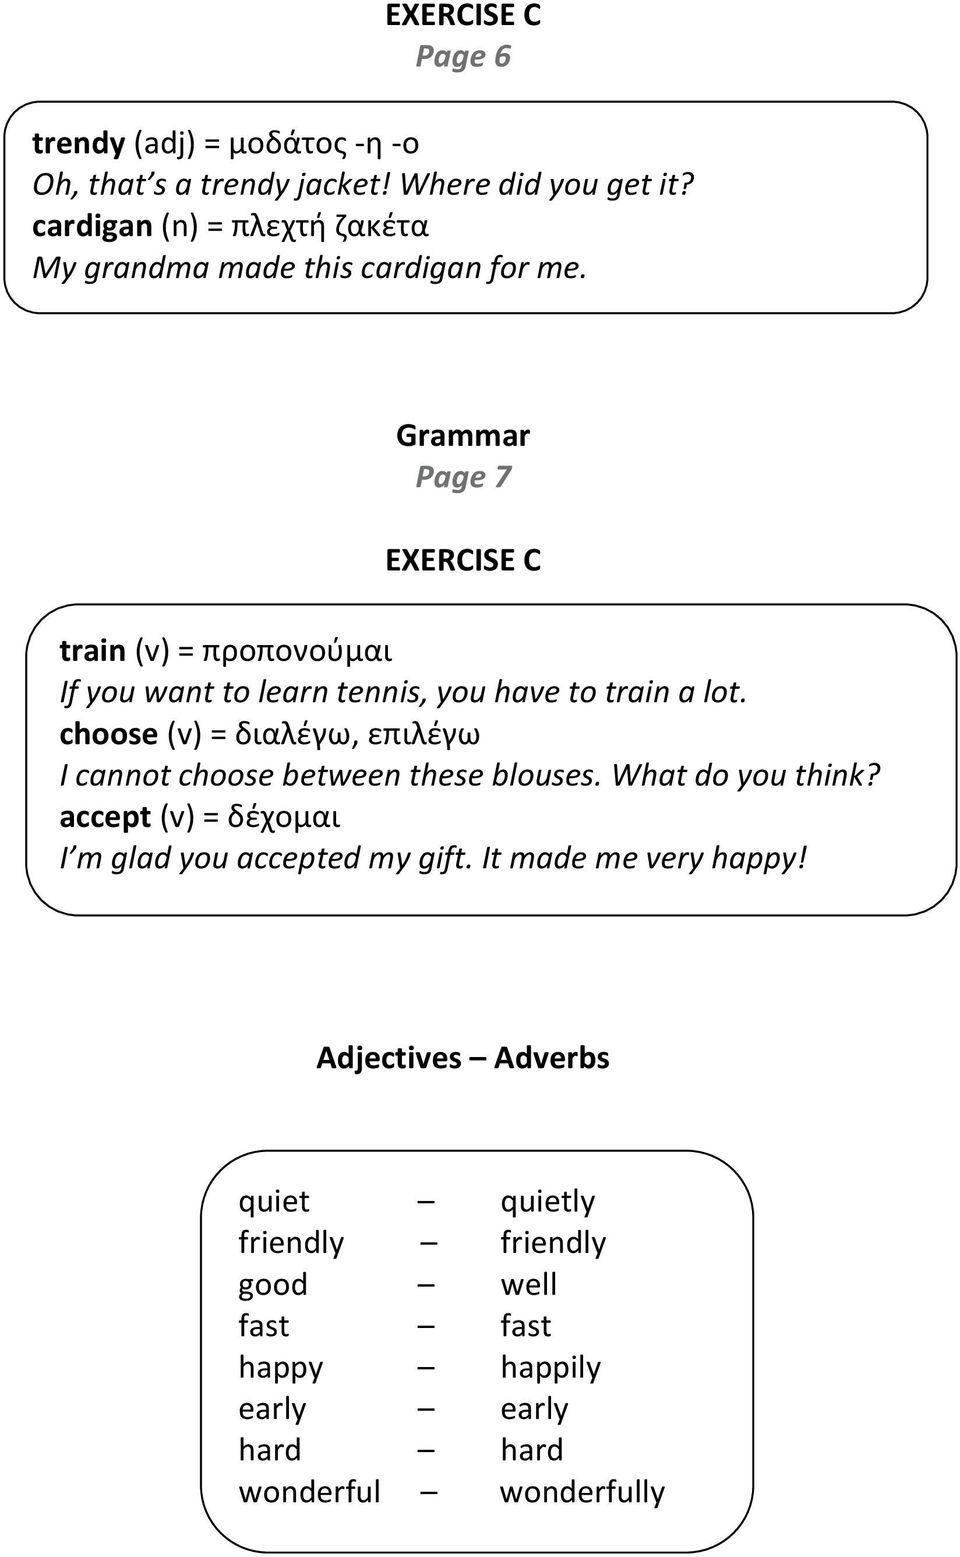 Grammar Page 7 EXERCISE C train (v) = προπονοφμαι Ιf you want to learn tennis, you have to train a lot.